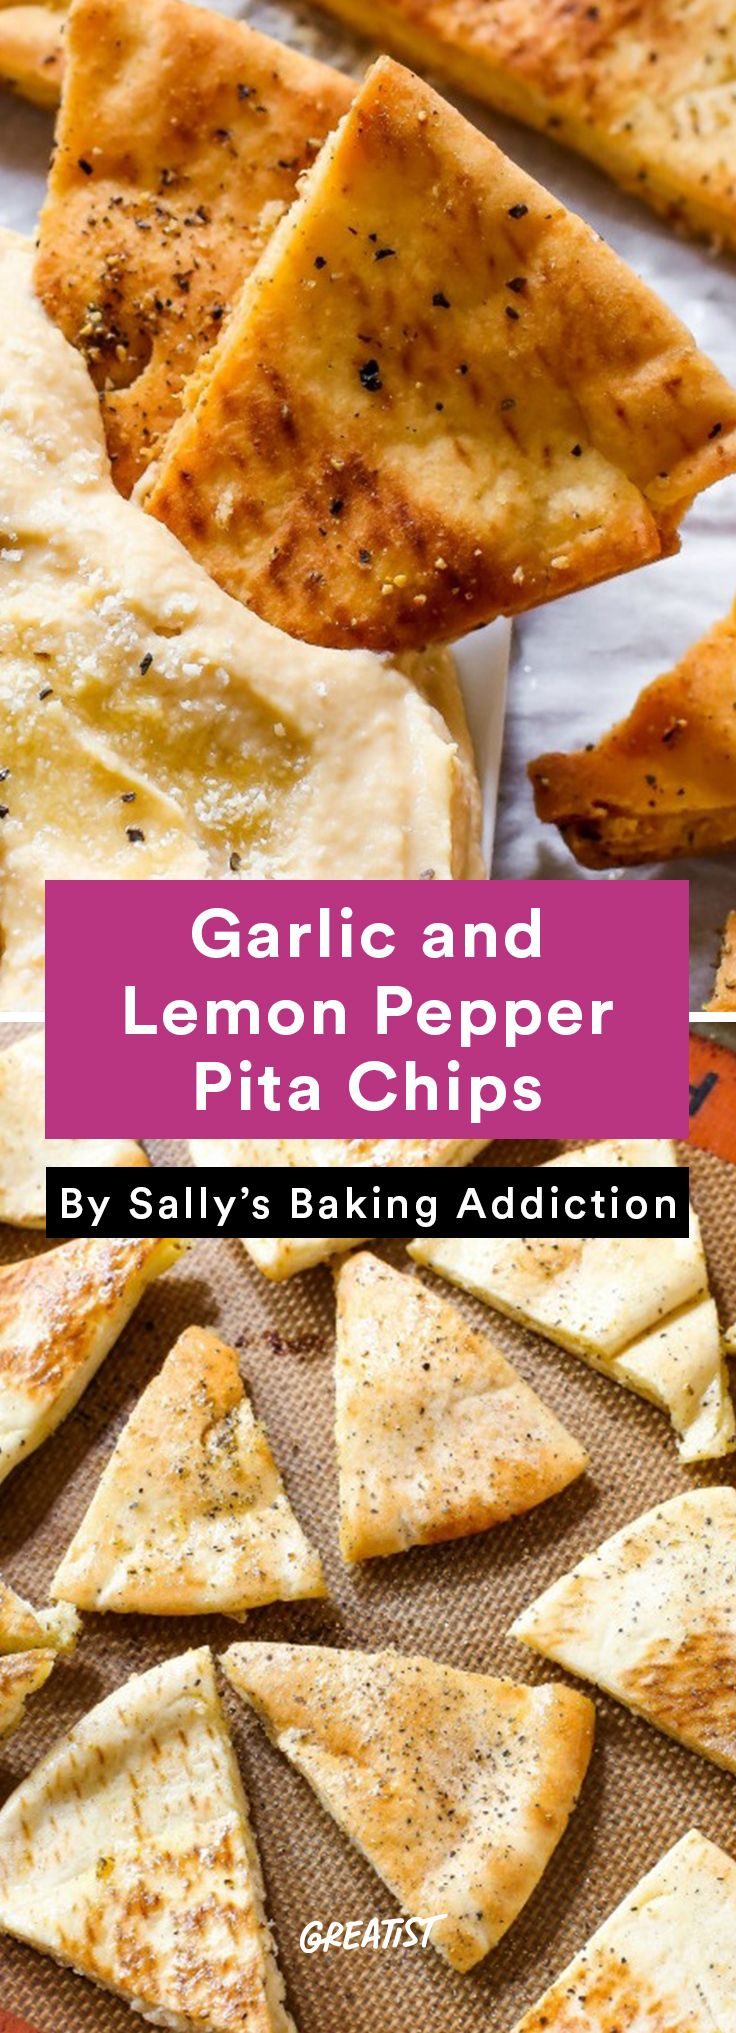 5. Garlicky Pita Chips #healthy #summer #snacks http://greatist.com/eat/healthy-summer-snacks-that-dont-require-a-cooler